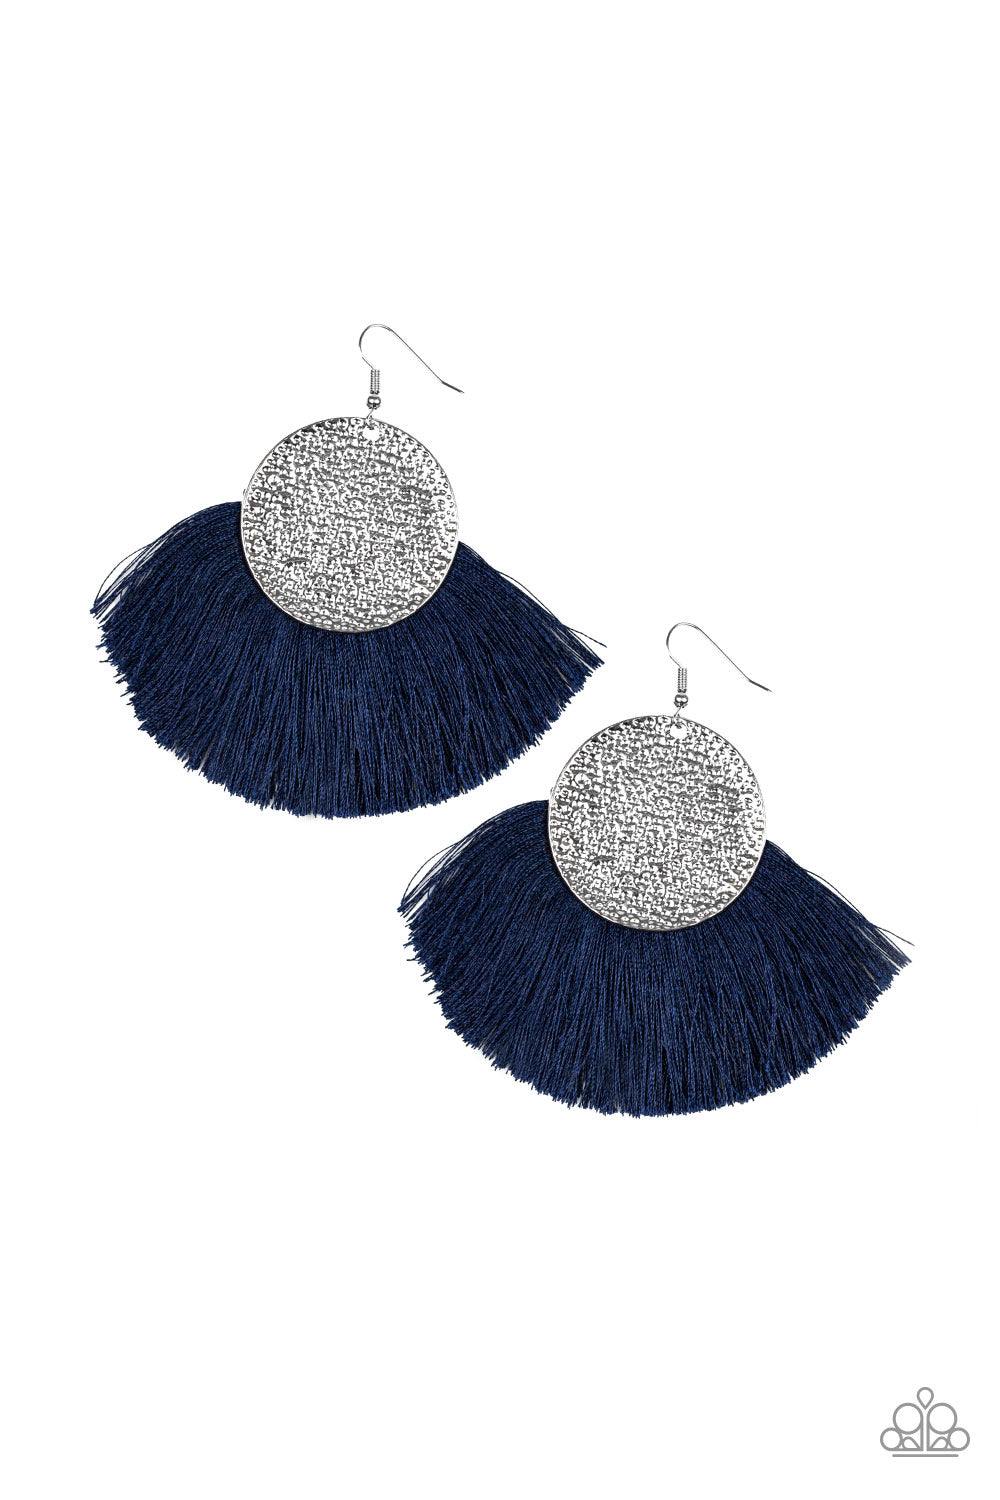 Paparazzi Accessories - Foxtrot Fringe - Blue Earrings - JMJ Jewelry Collection